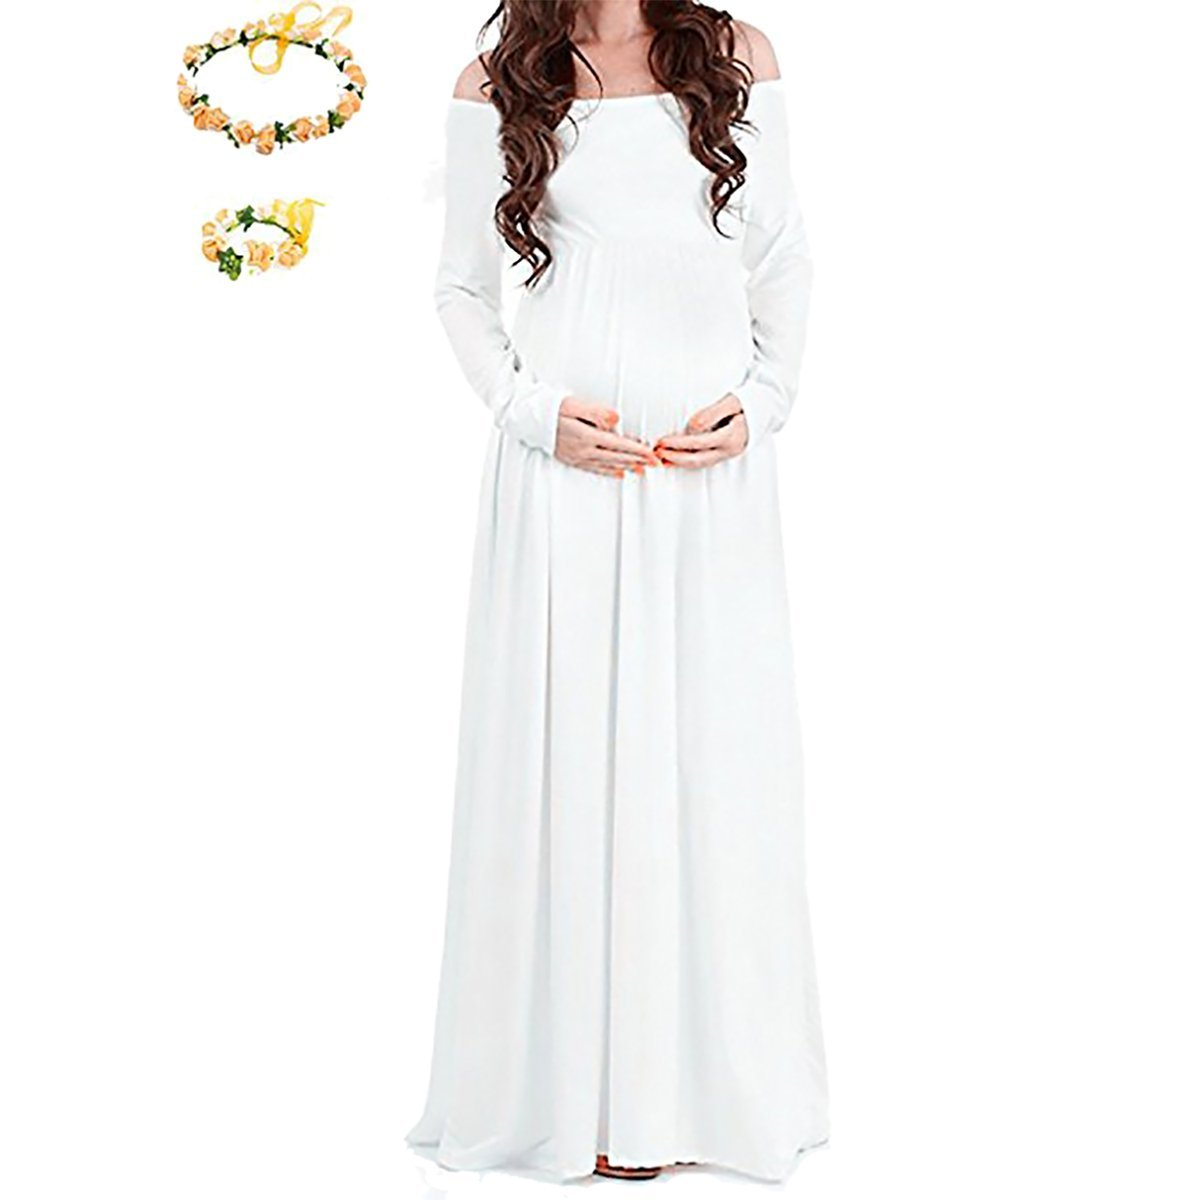 SICILY Maternity Grace Off The Shoulder Maxi Dress For Photo Shoot-Long Sleeve Baby Shower Gown (XXL, White)